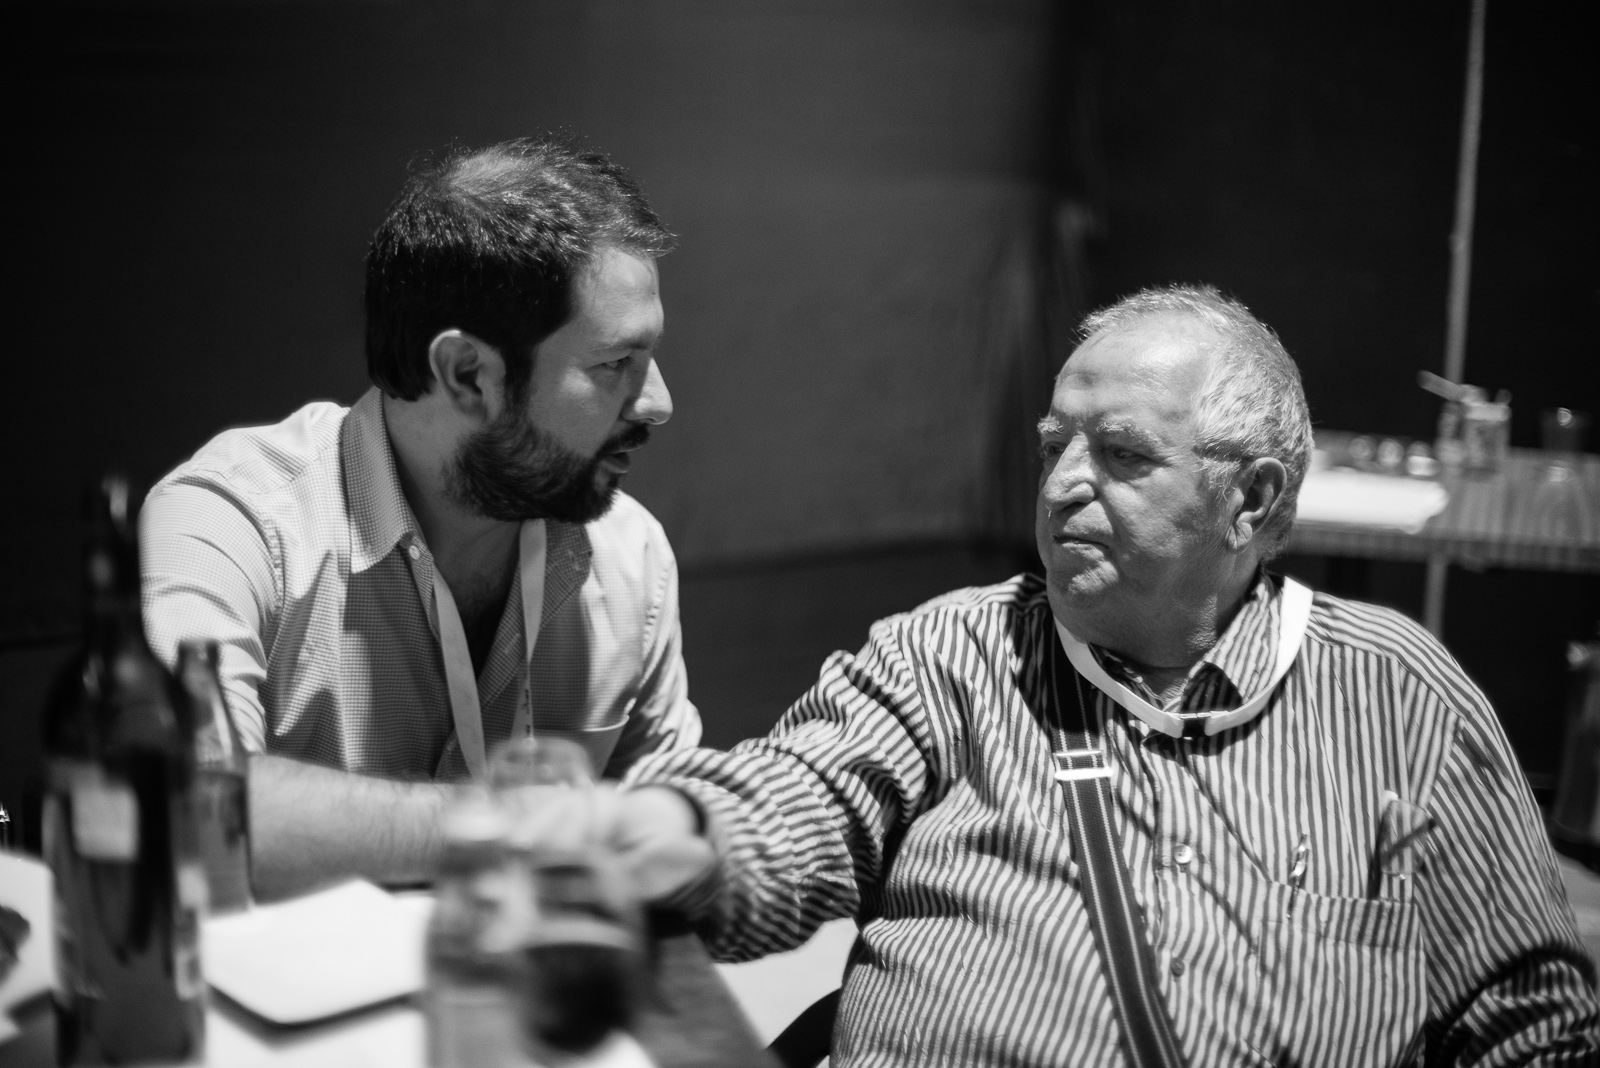 Chefs Enrique Olvera and Juan Mari Arzak discussing the role of